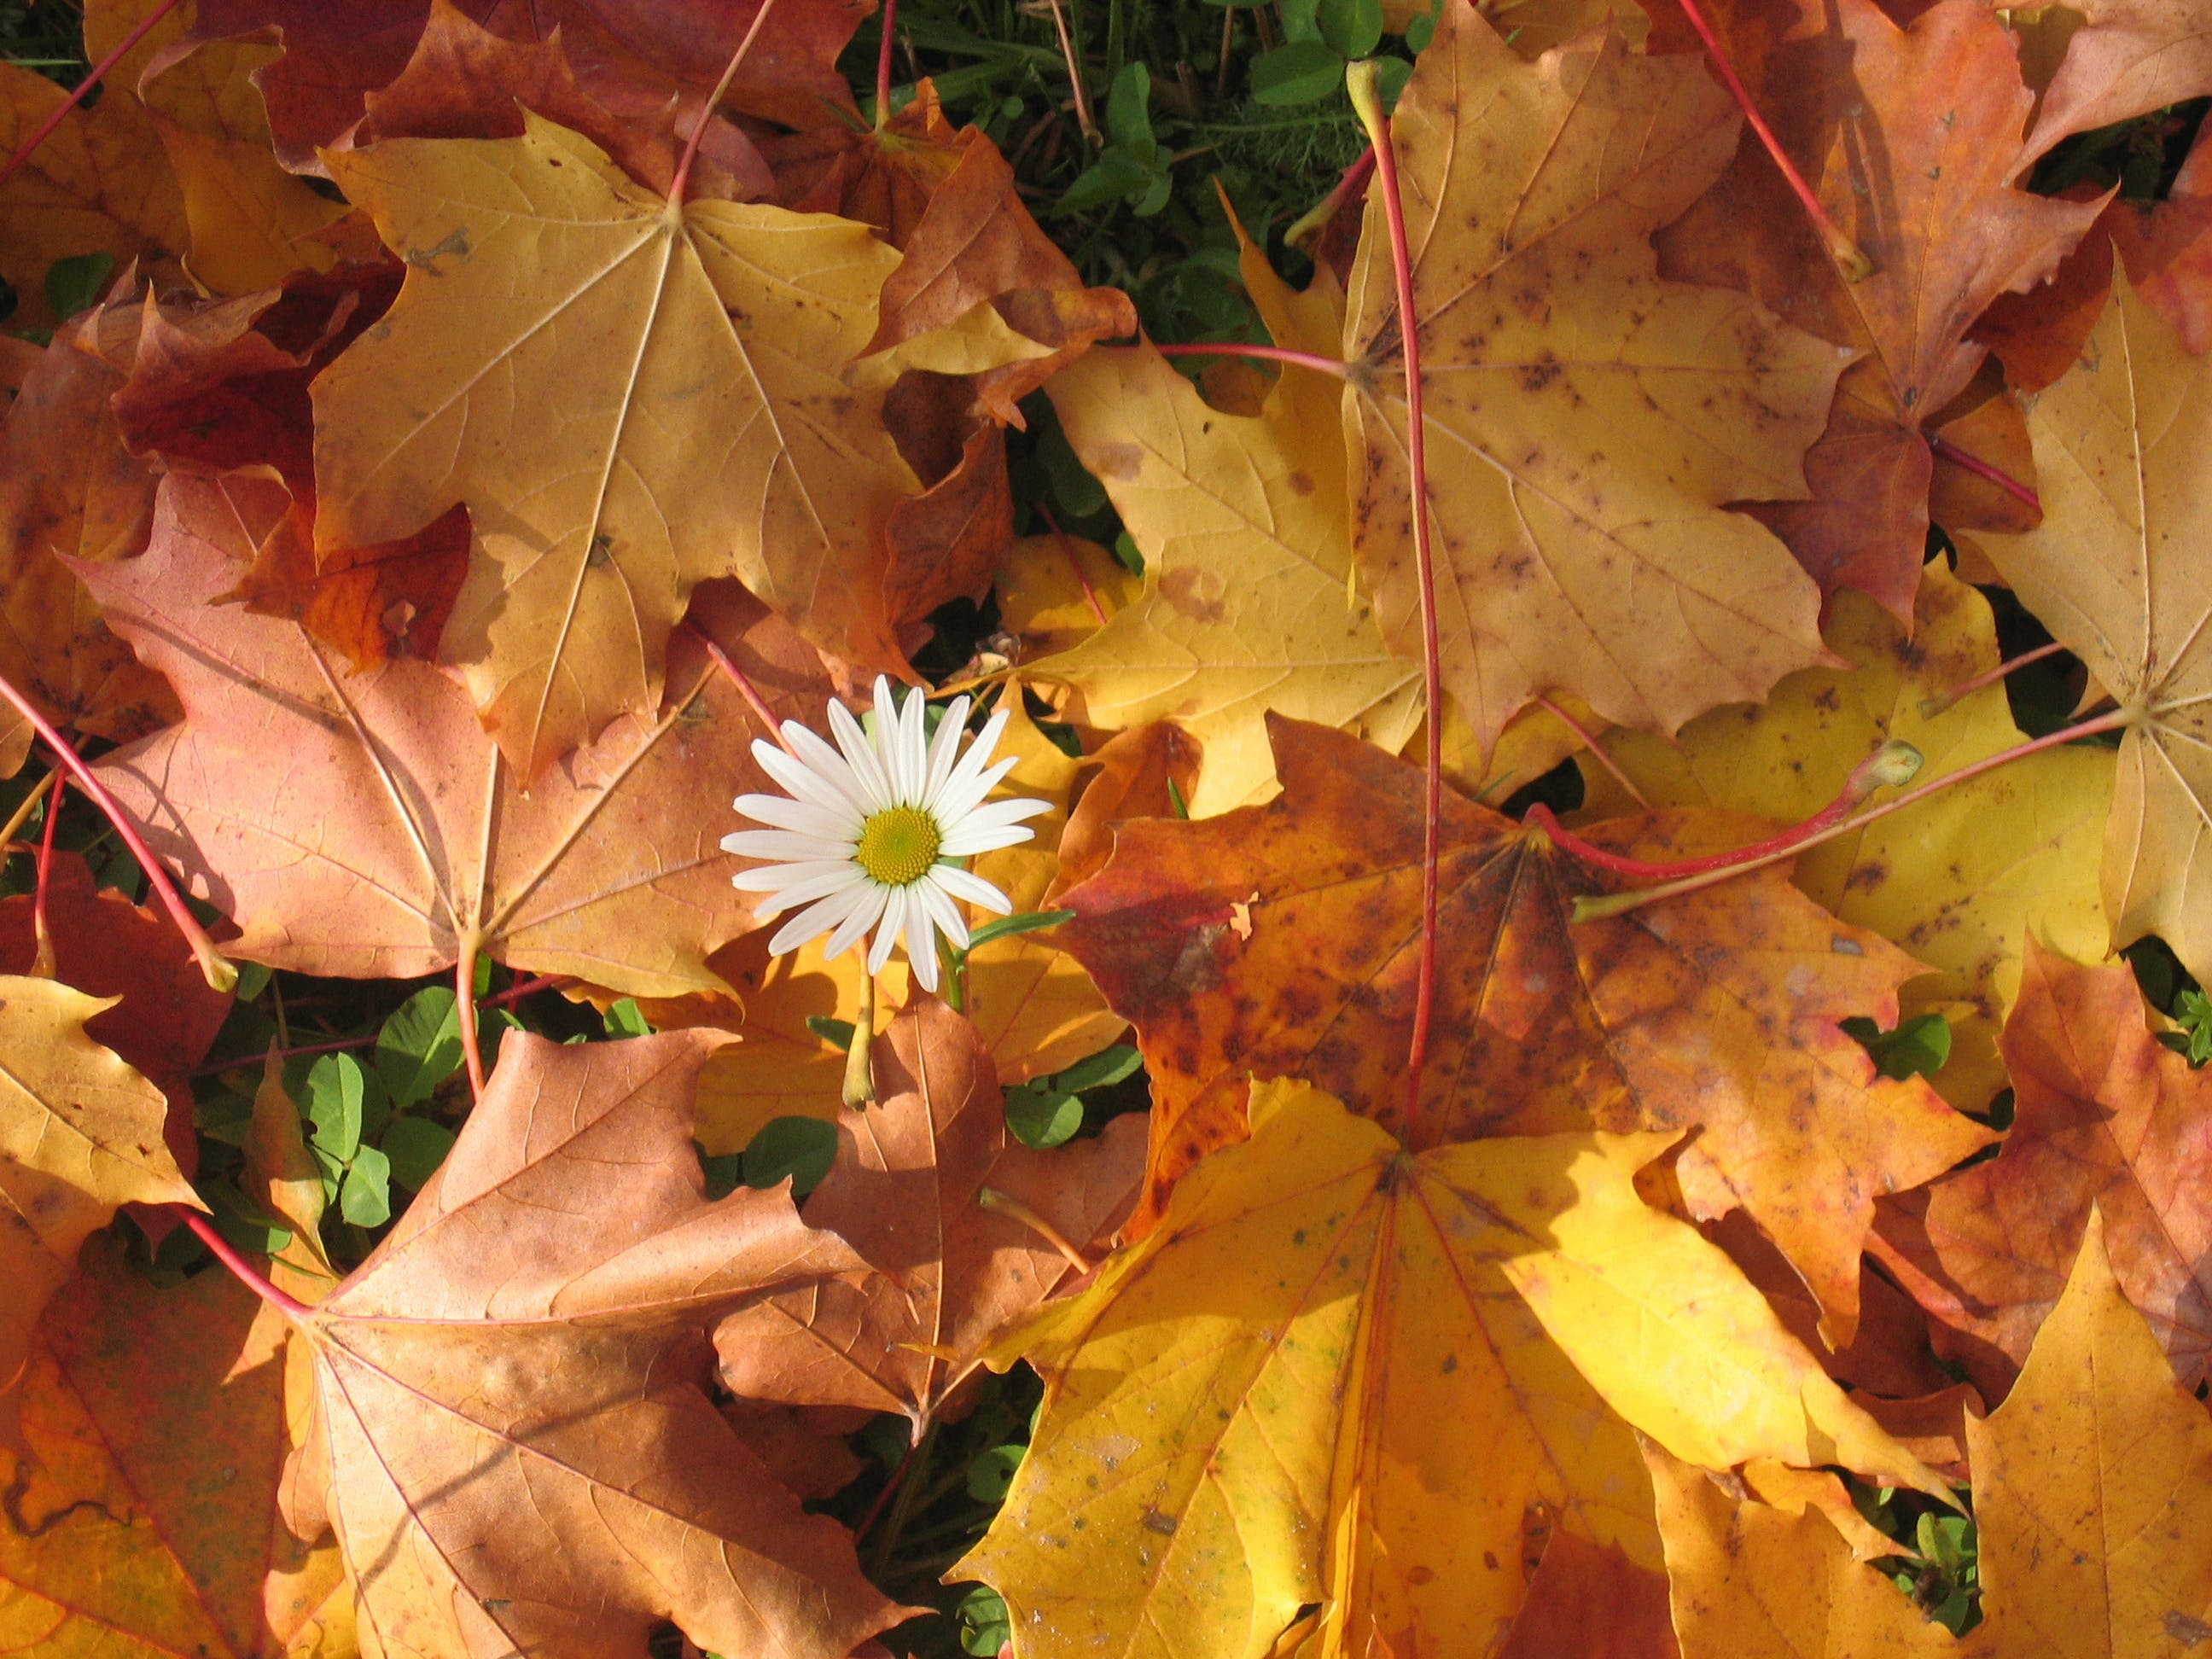 White Flower Surrounded by Red Maple Leaf